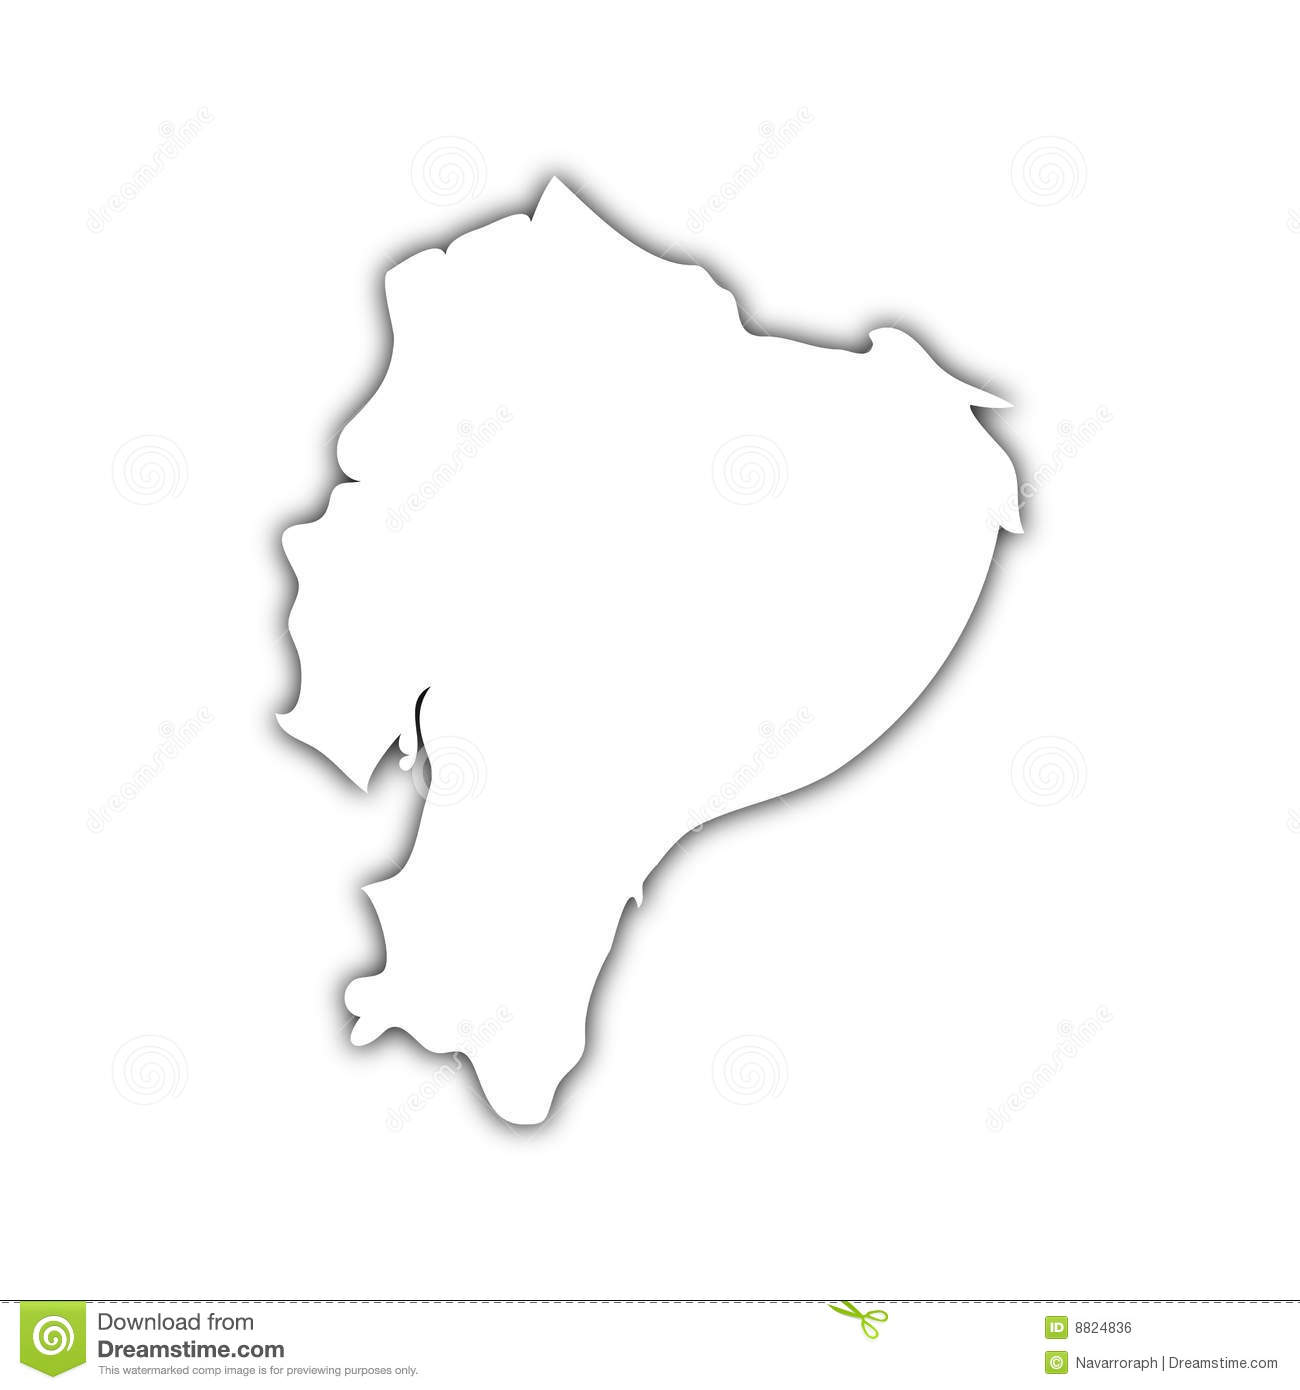 Stock Illustration Farm House Cottage Illustration Idyllic Traditional Thatched Image47229727 together with Half Not 8 Things Wed Rather See The Trump Administration Cut In Half as well Flourish Line Cliparts besides 1501 Free Clipart Of An Elephant as well Stock Image Angola Outline Map Image4793951. on country vector graphics